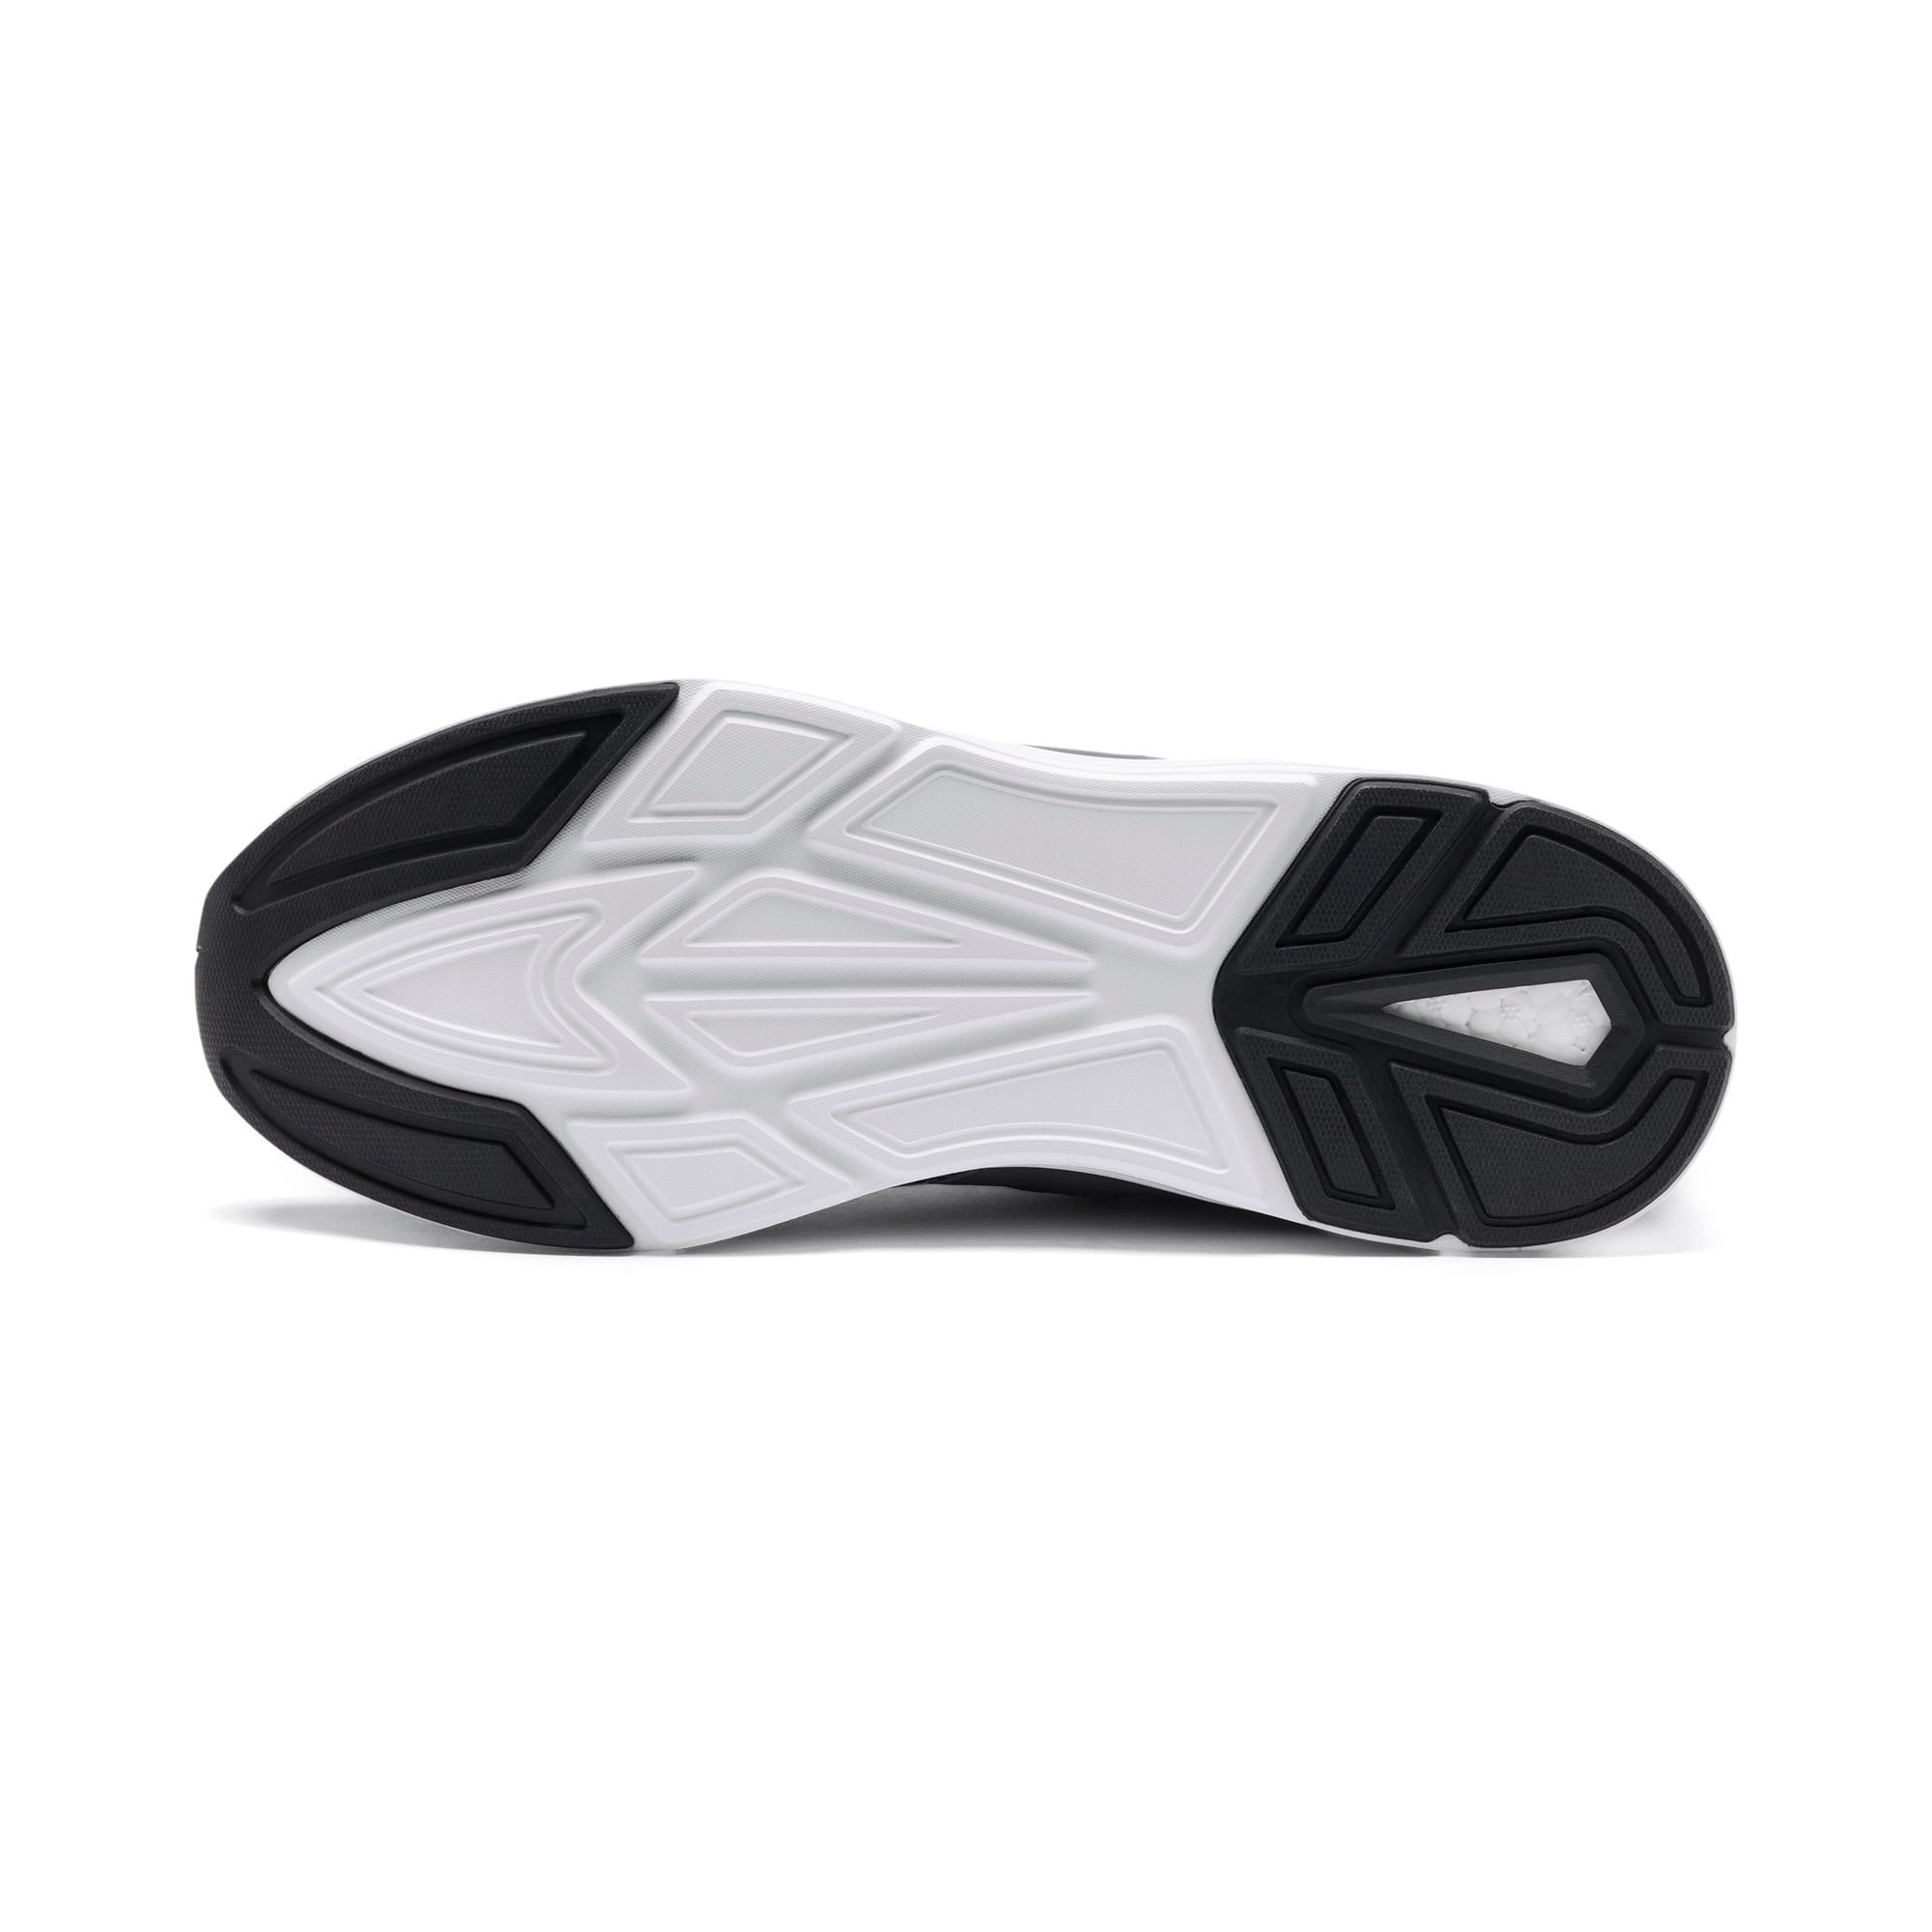 Thumbnail 4 of NRGY Asteroid Running Shoes, CASTLEROCK-Puma White, medium-IND